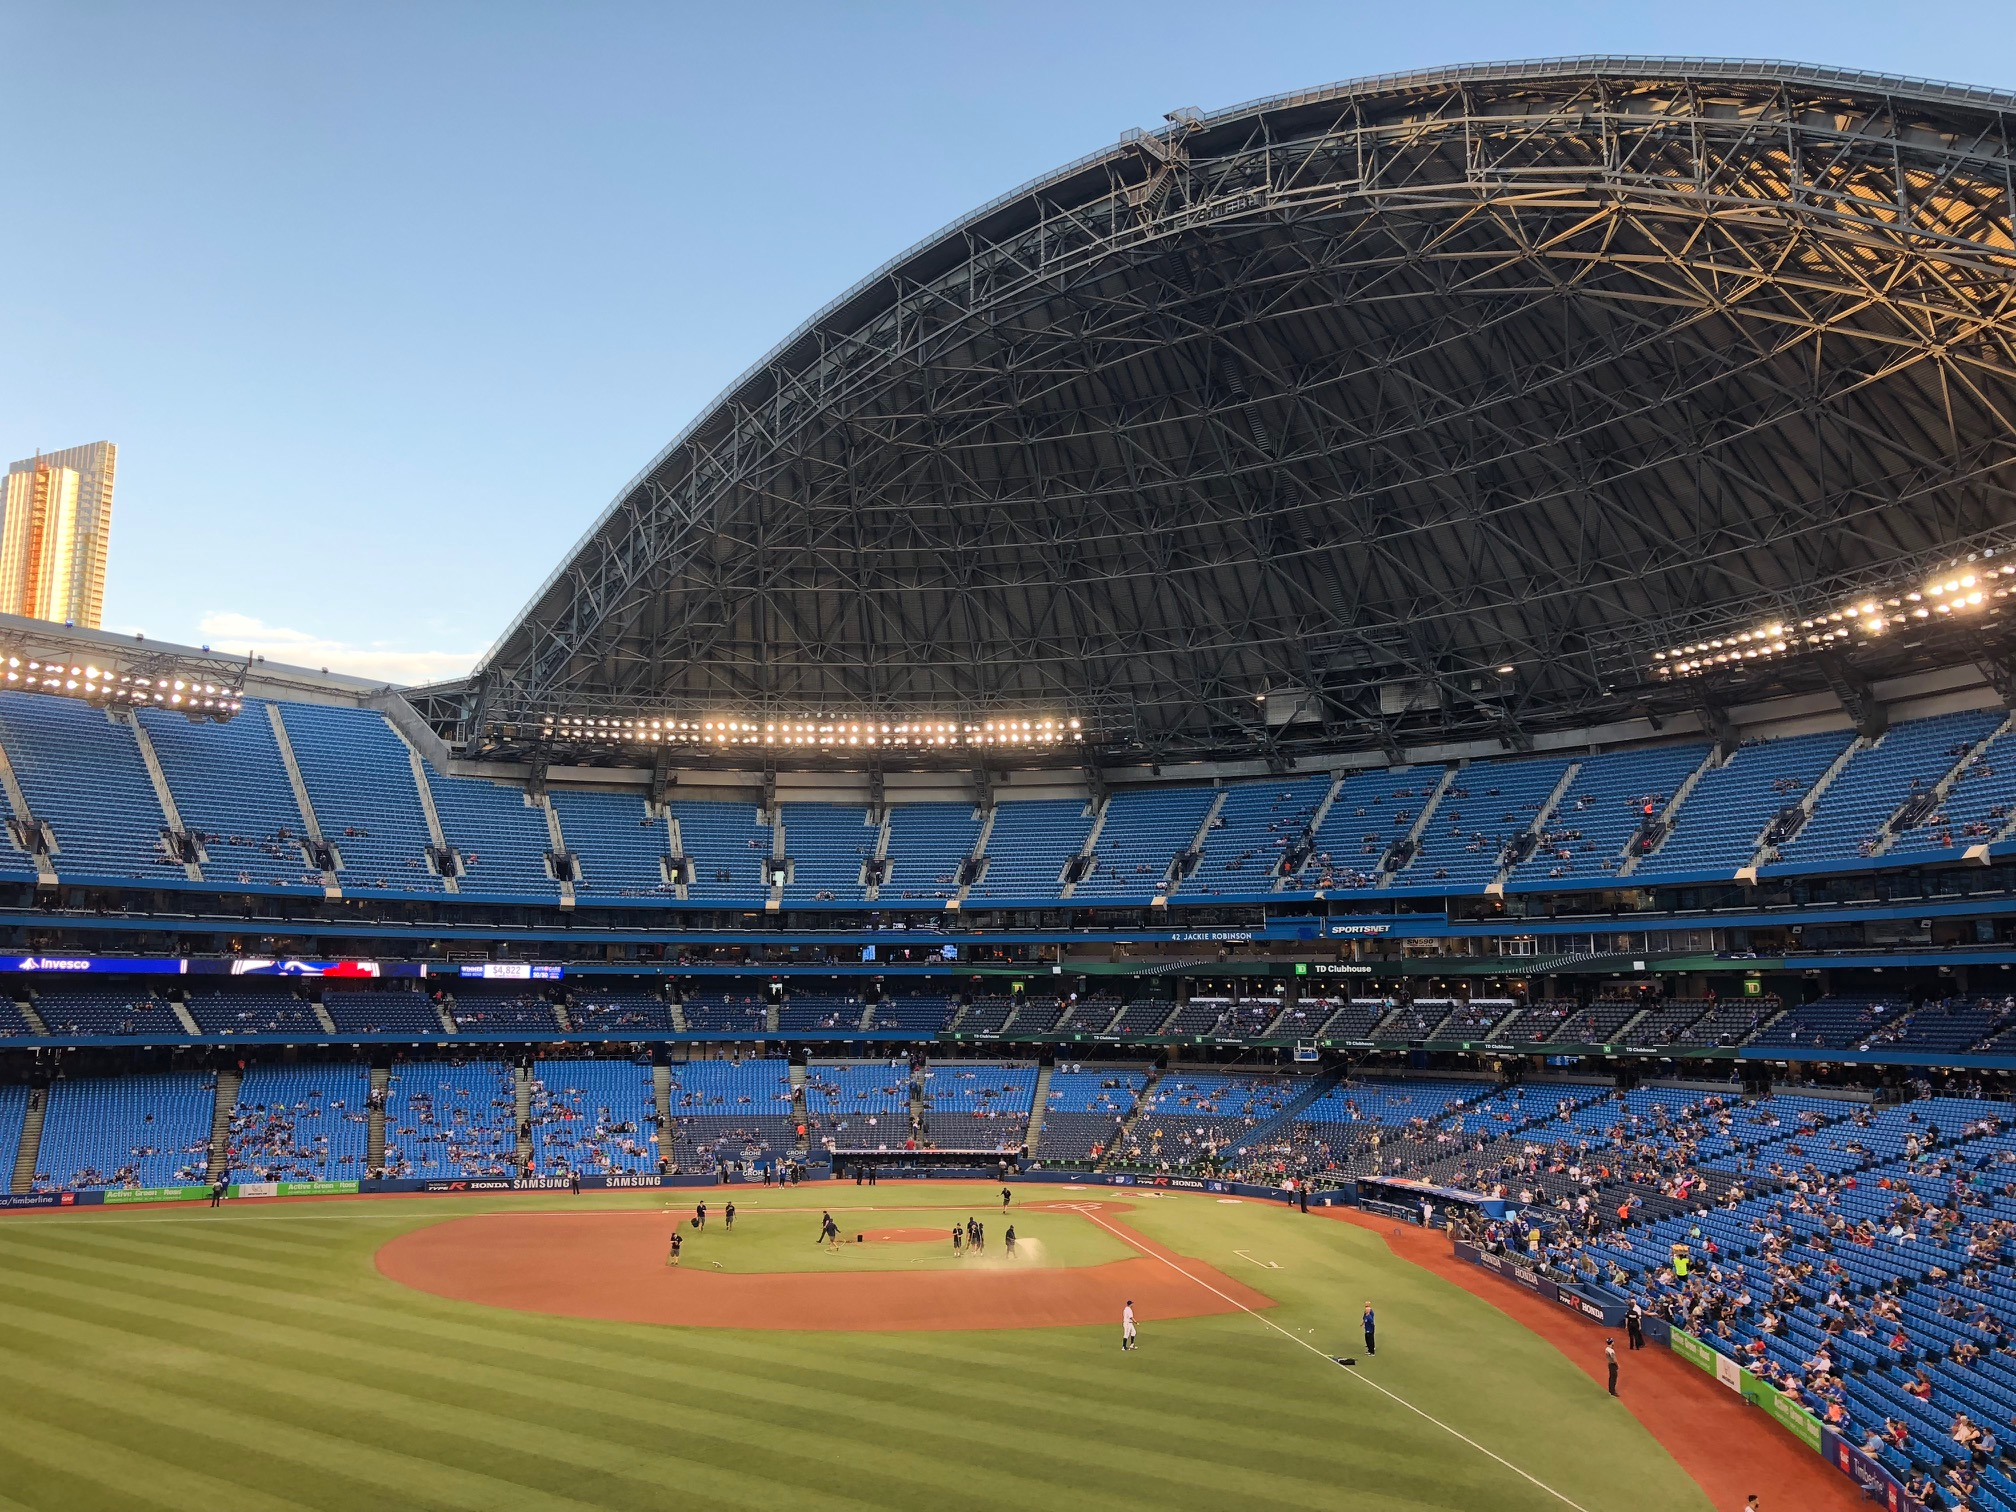 Photo of Rogers Centre from outfield with roof open